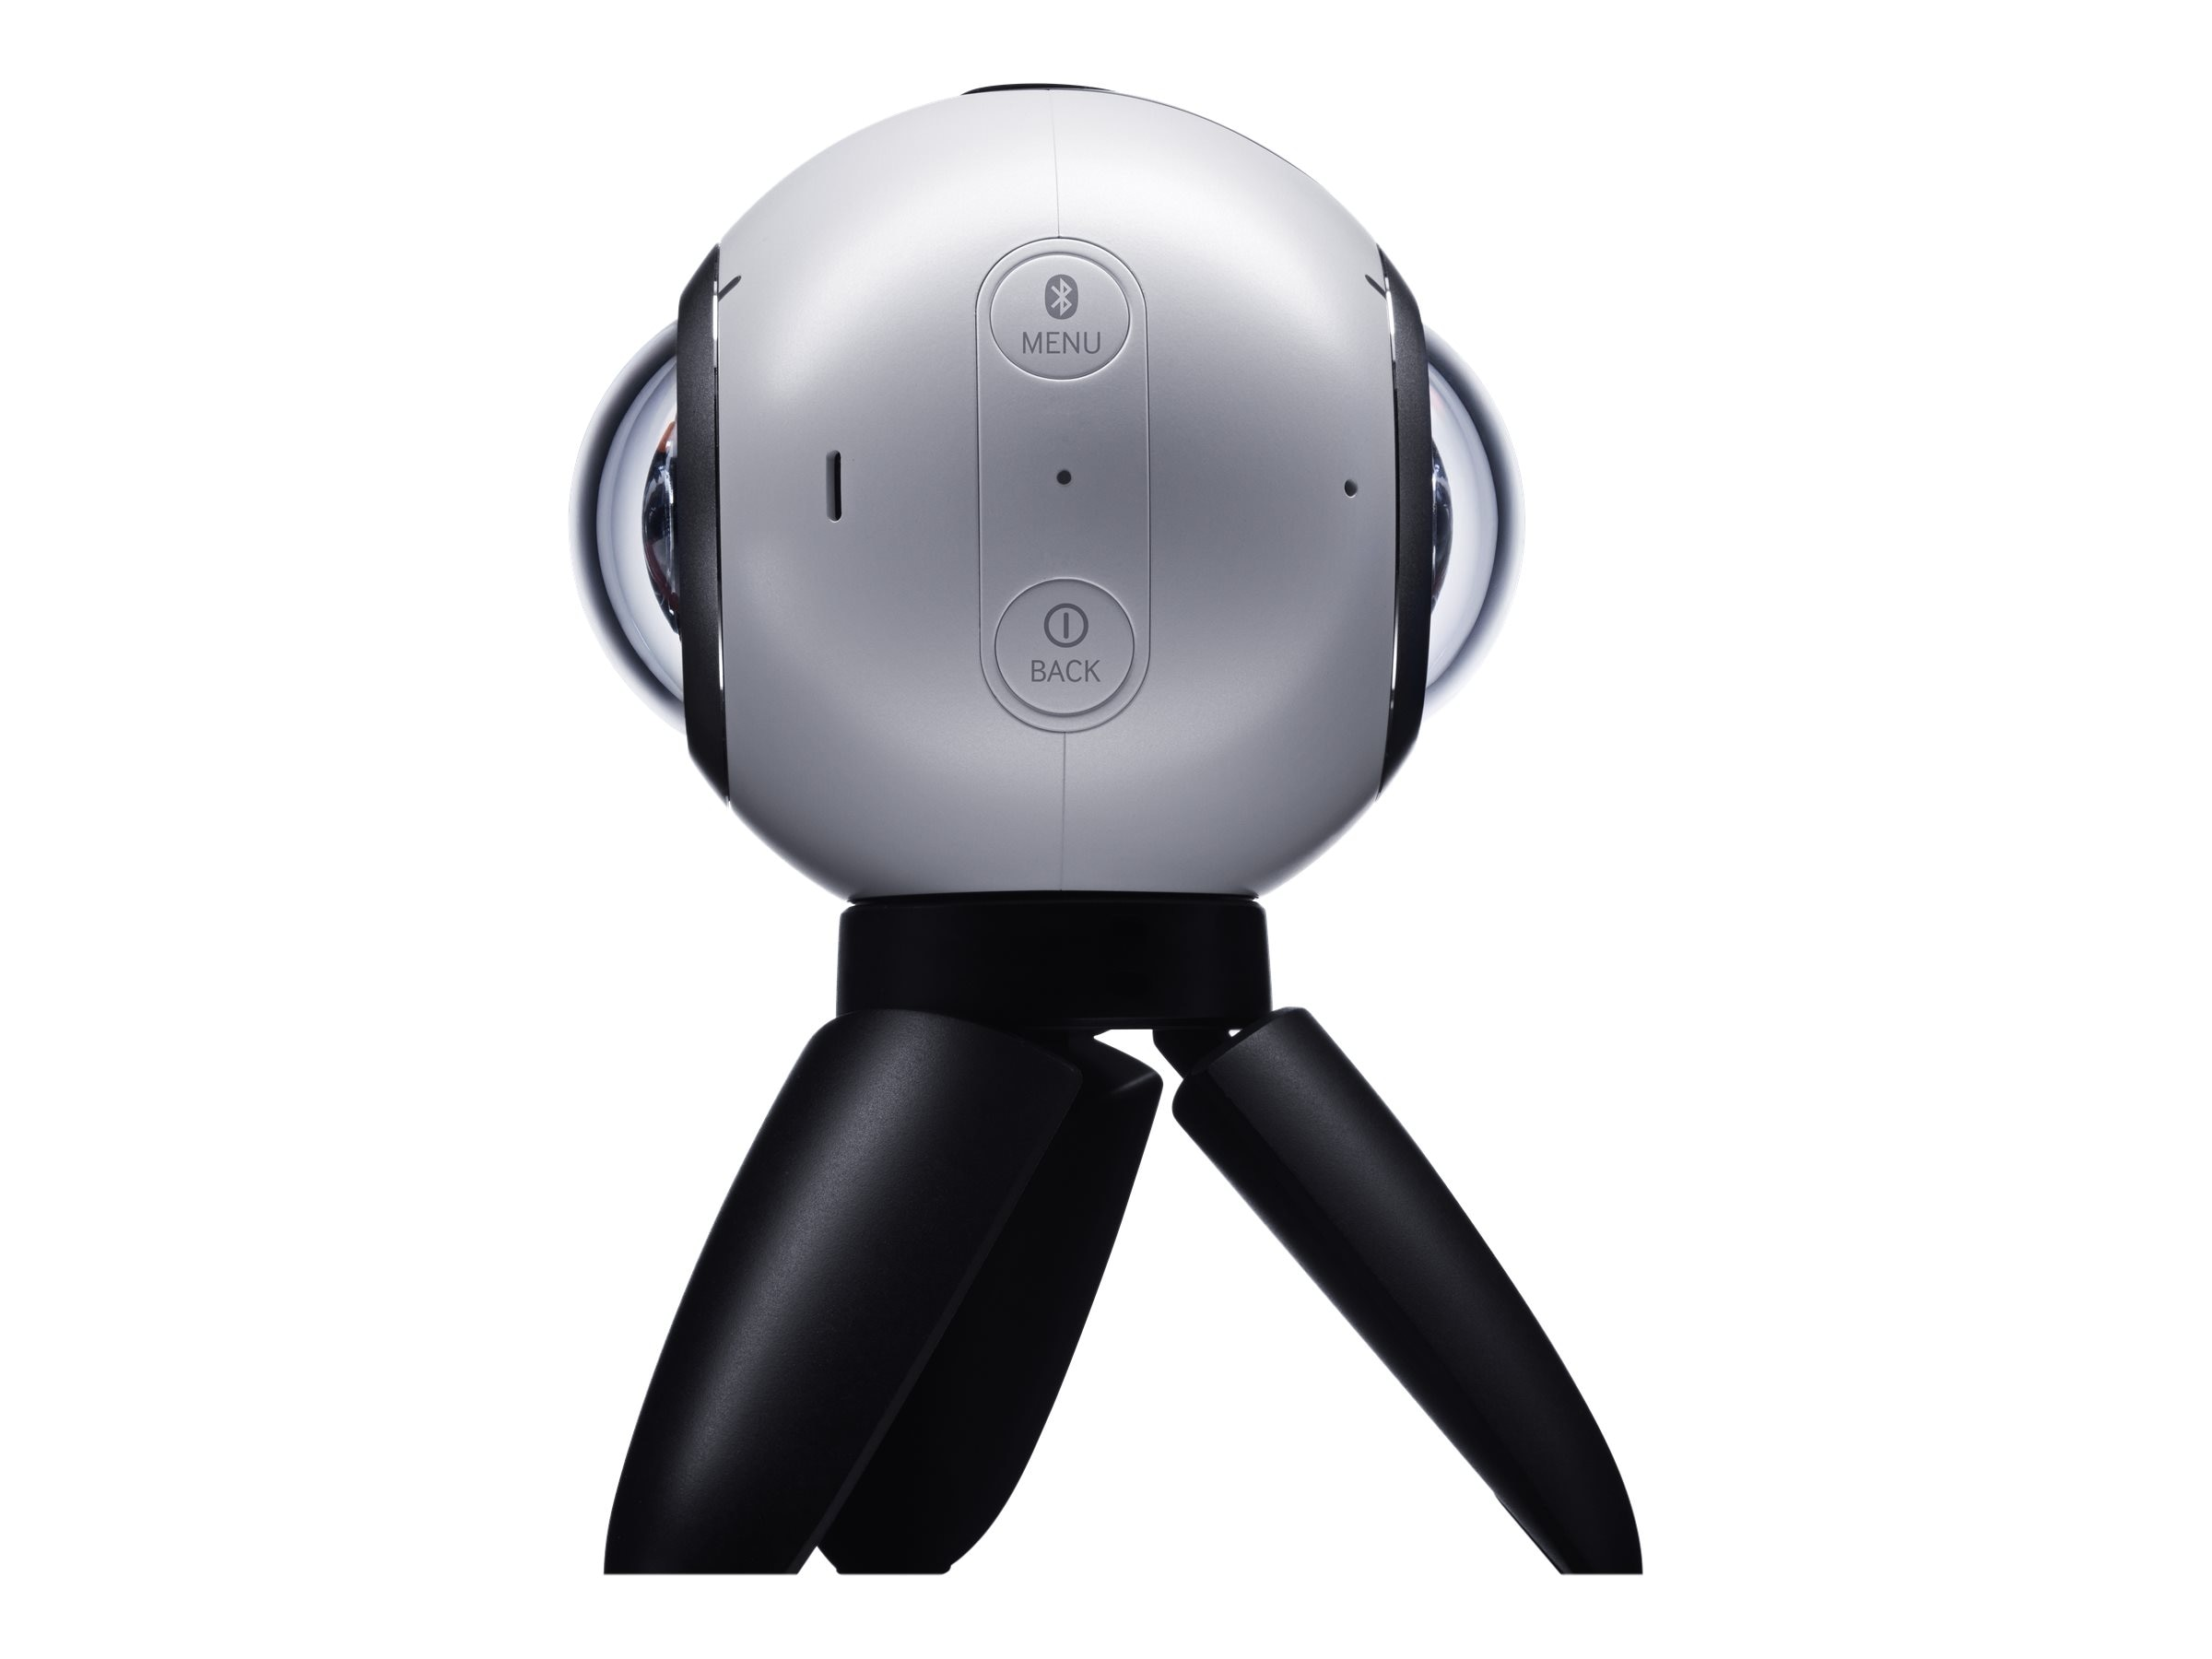 Samsung Gear 360 Spherical VR Camera, SM-C200NZWAXAR